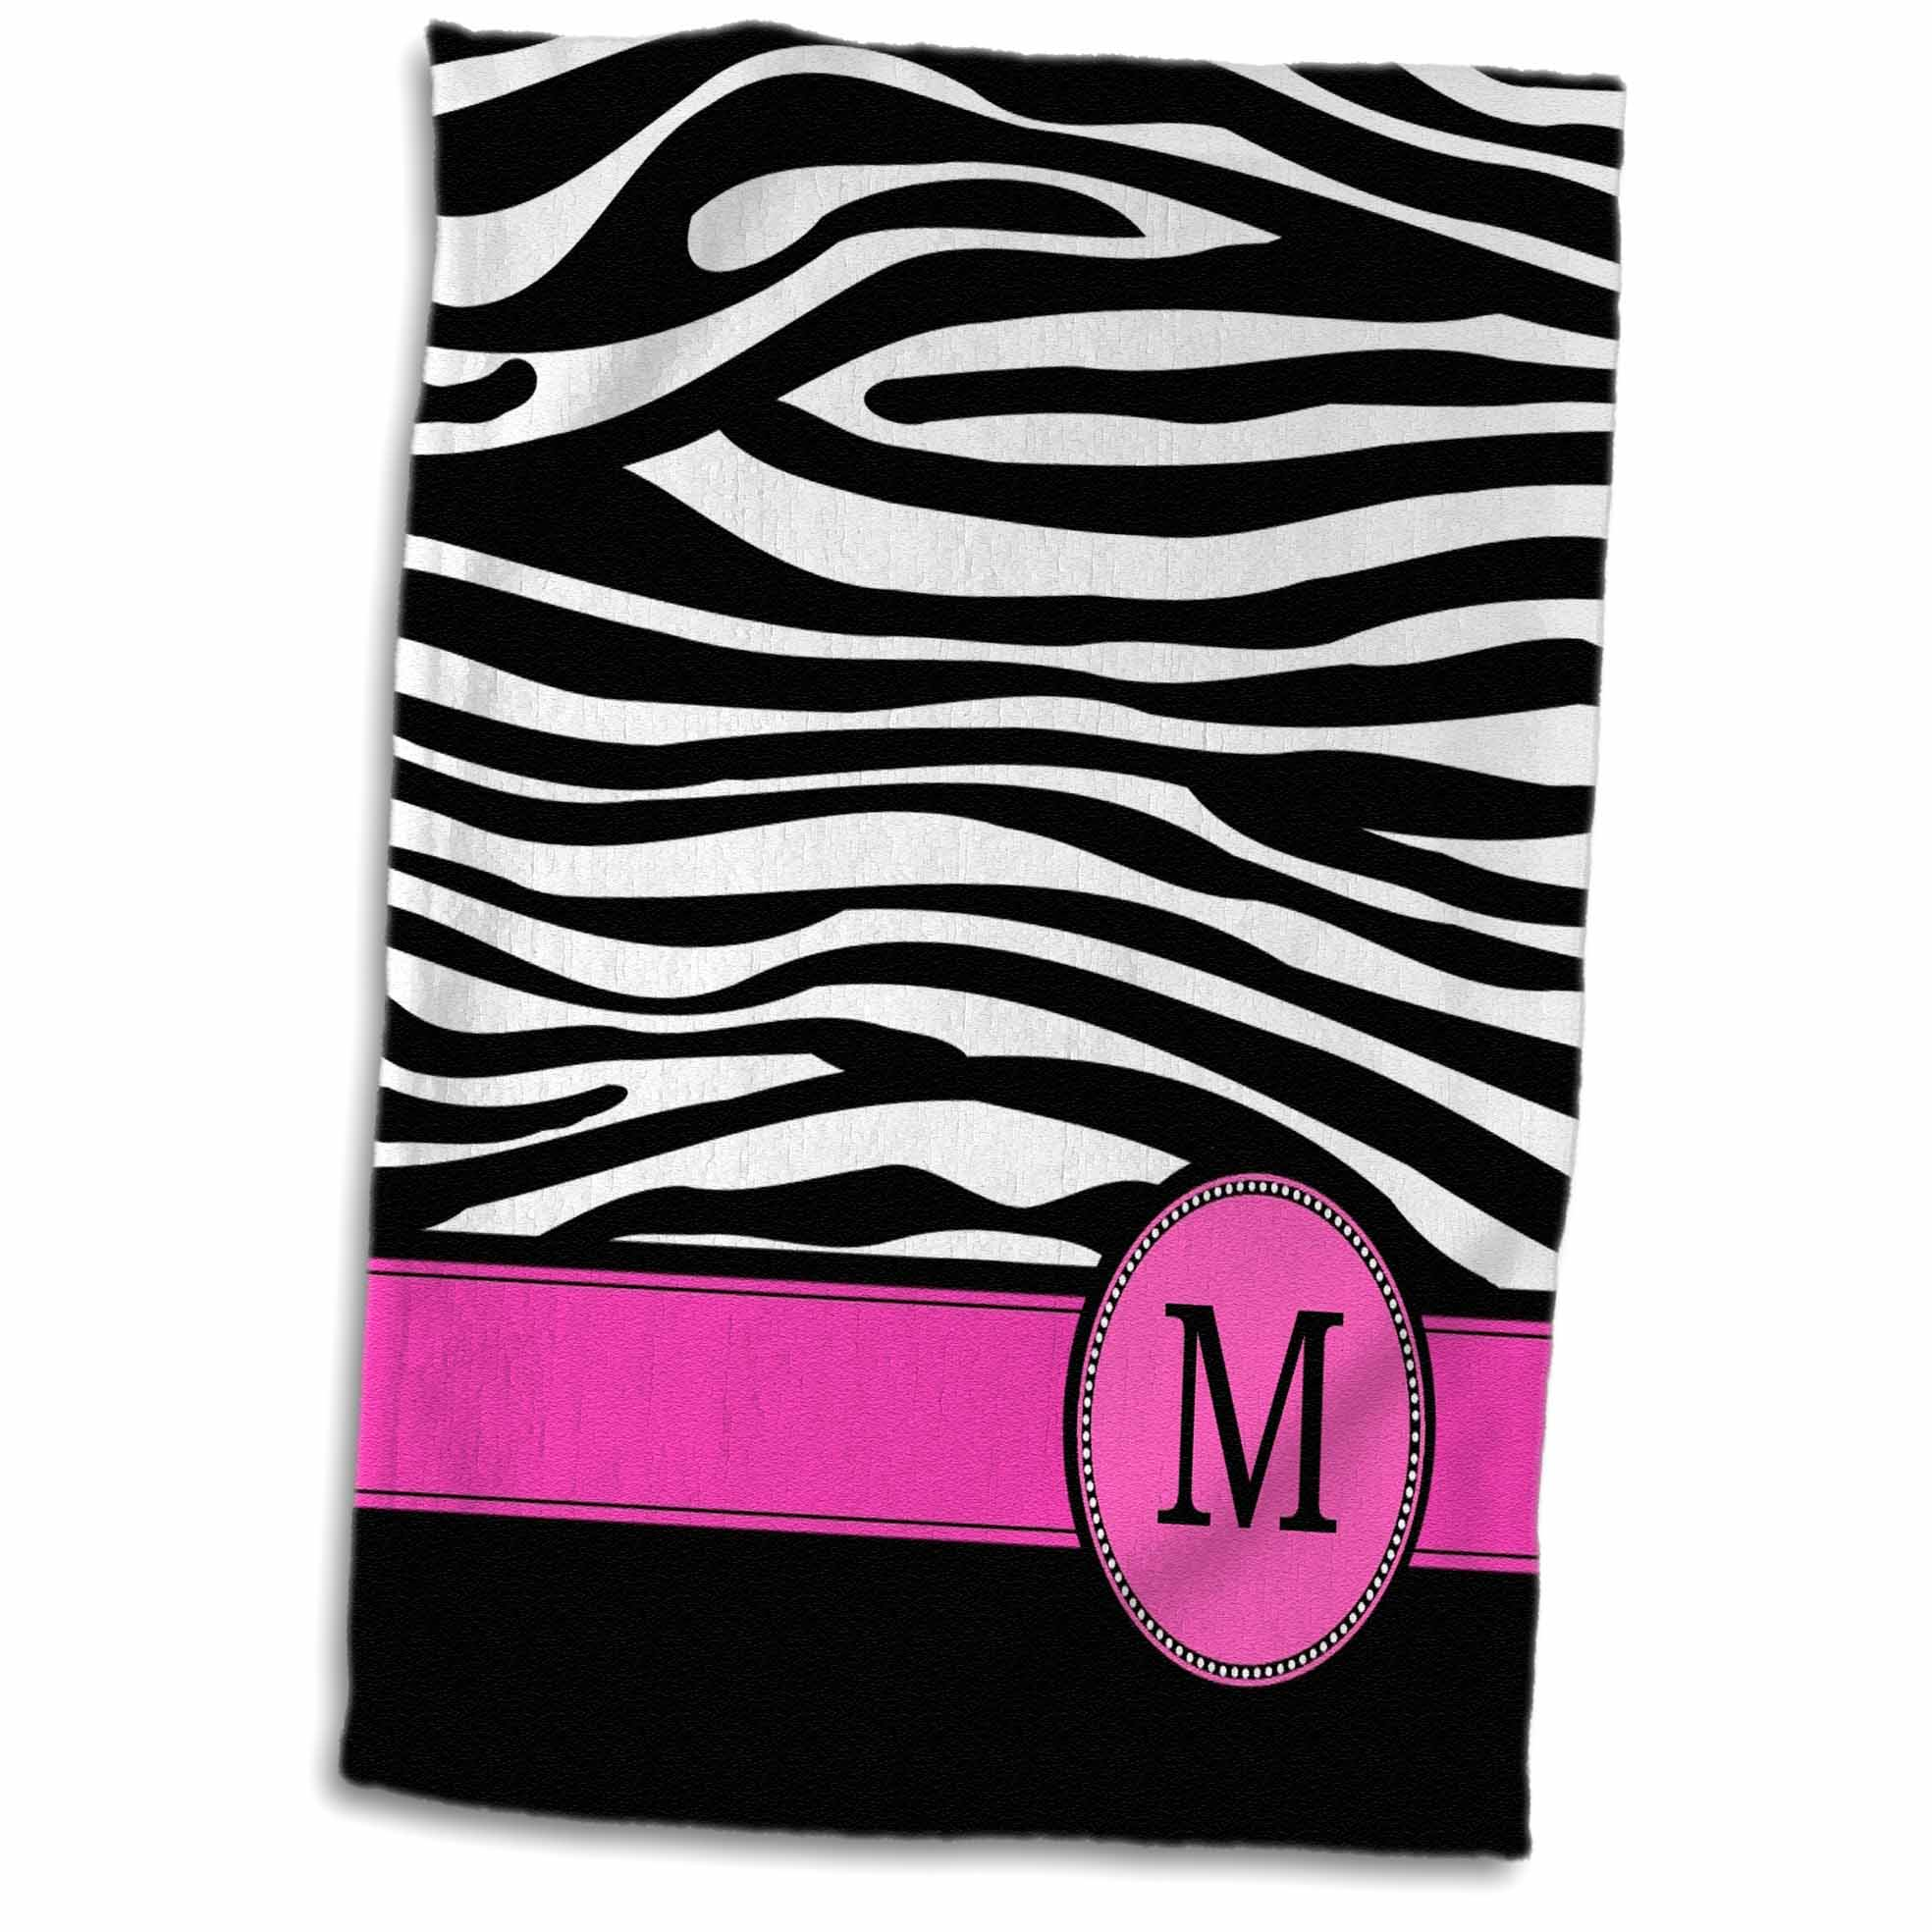 3dRose Letter M monogrammed black and white zebra stripes animal print with hot pink personalized initial - Towel, 15 by 22-inch